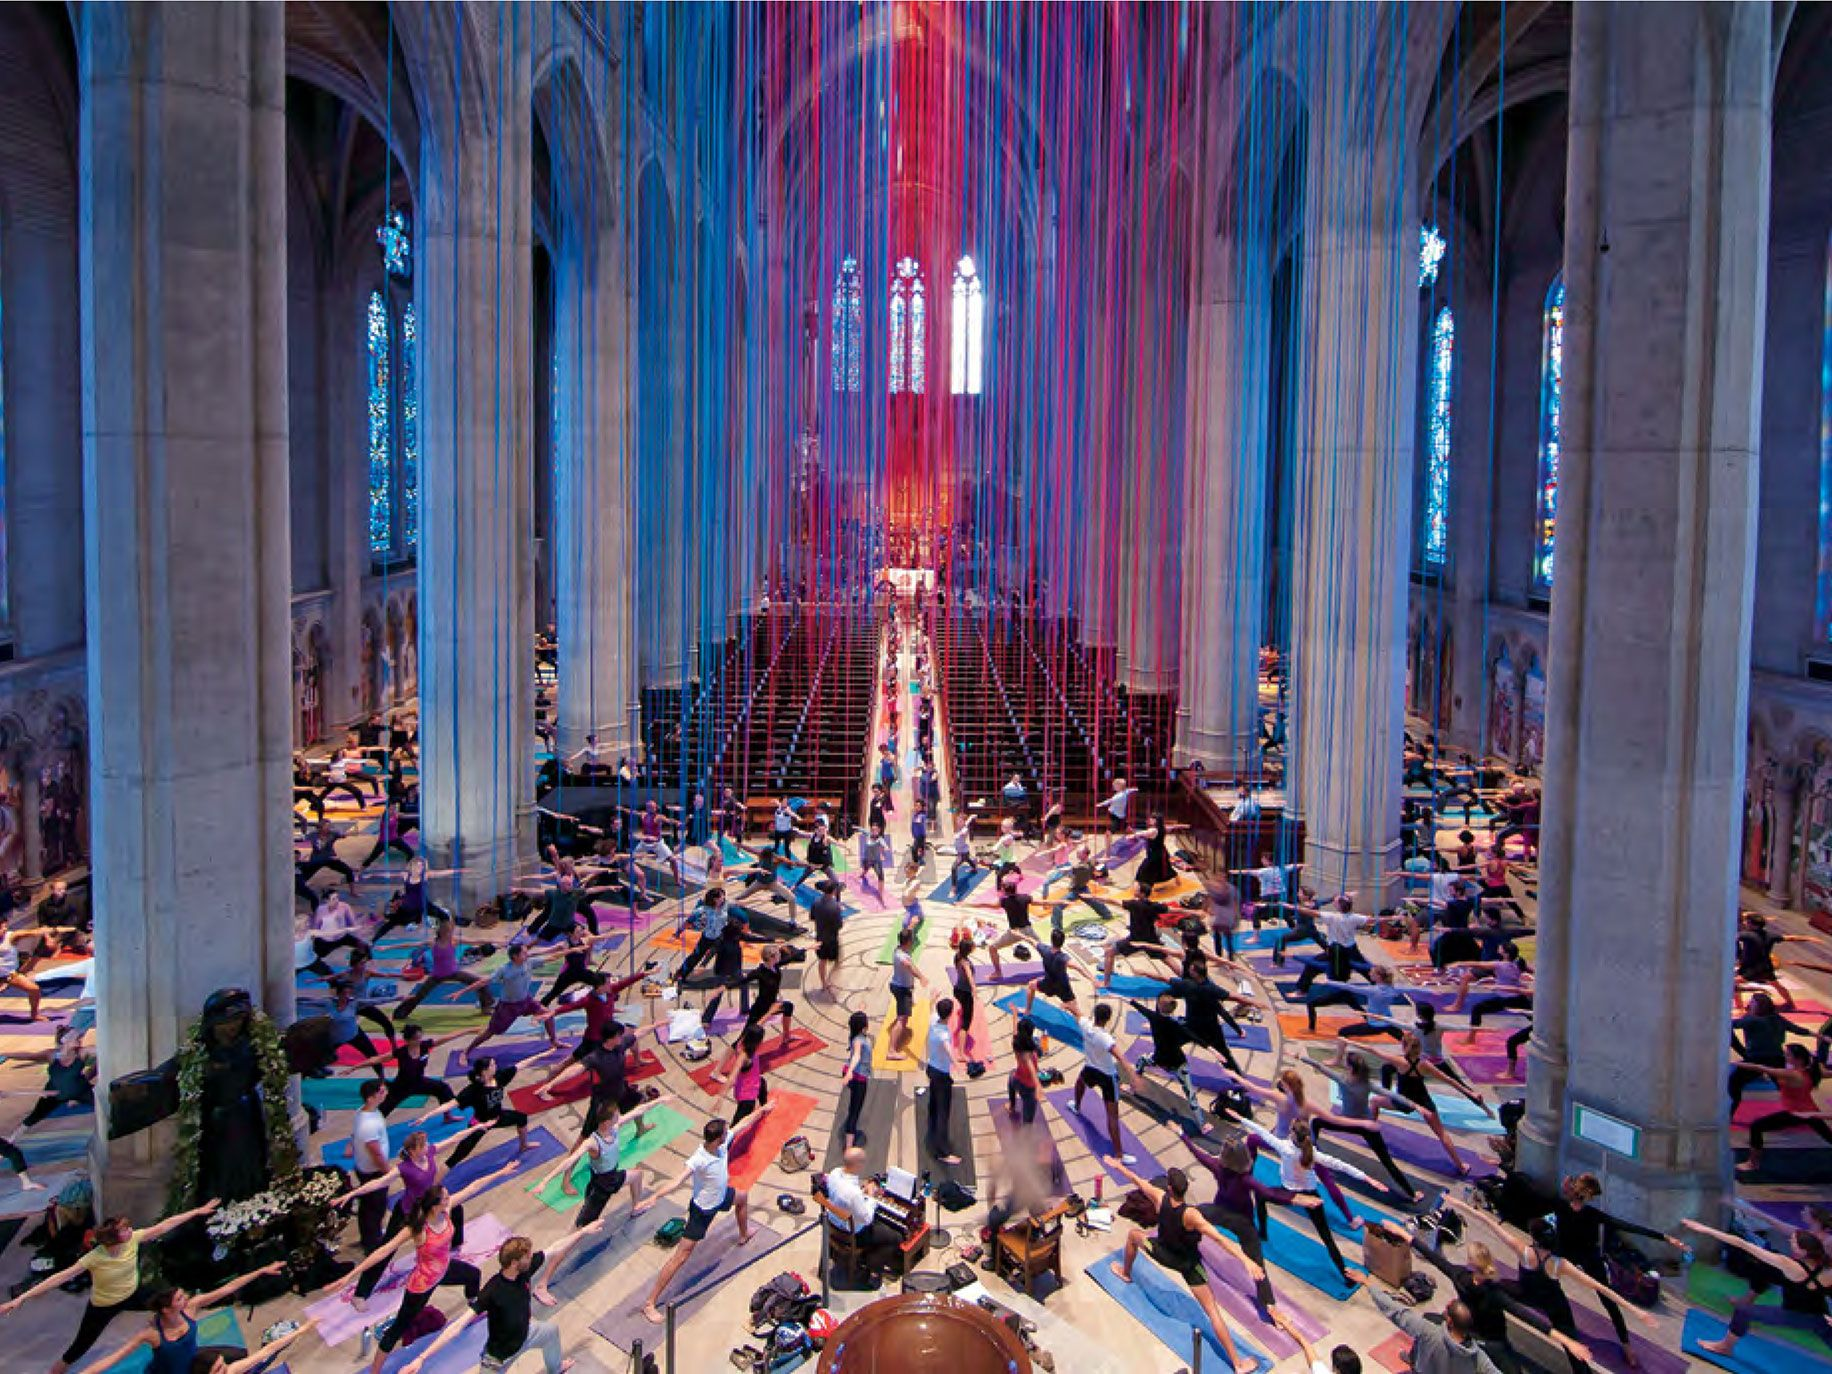 Yoga on the labyrinth at Grace Cathedral, underneath an art installation titled Graced by Light by artist Anne Patterson, from San Francisco on Instagram.